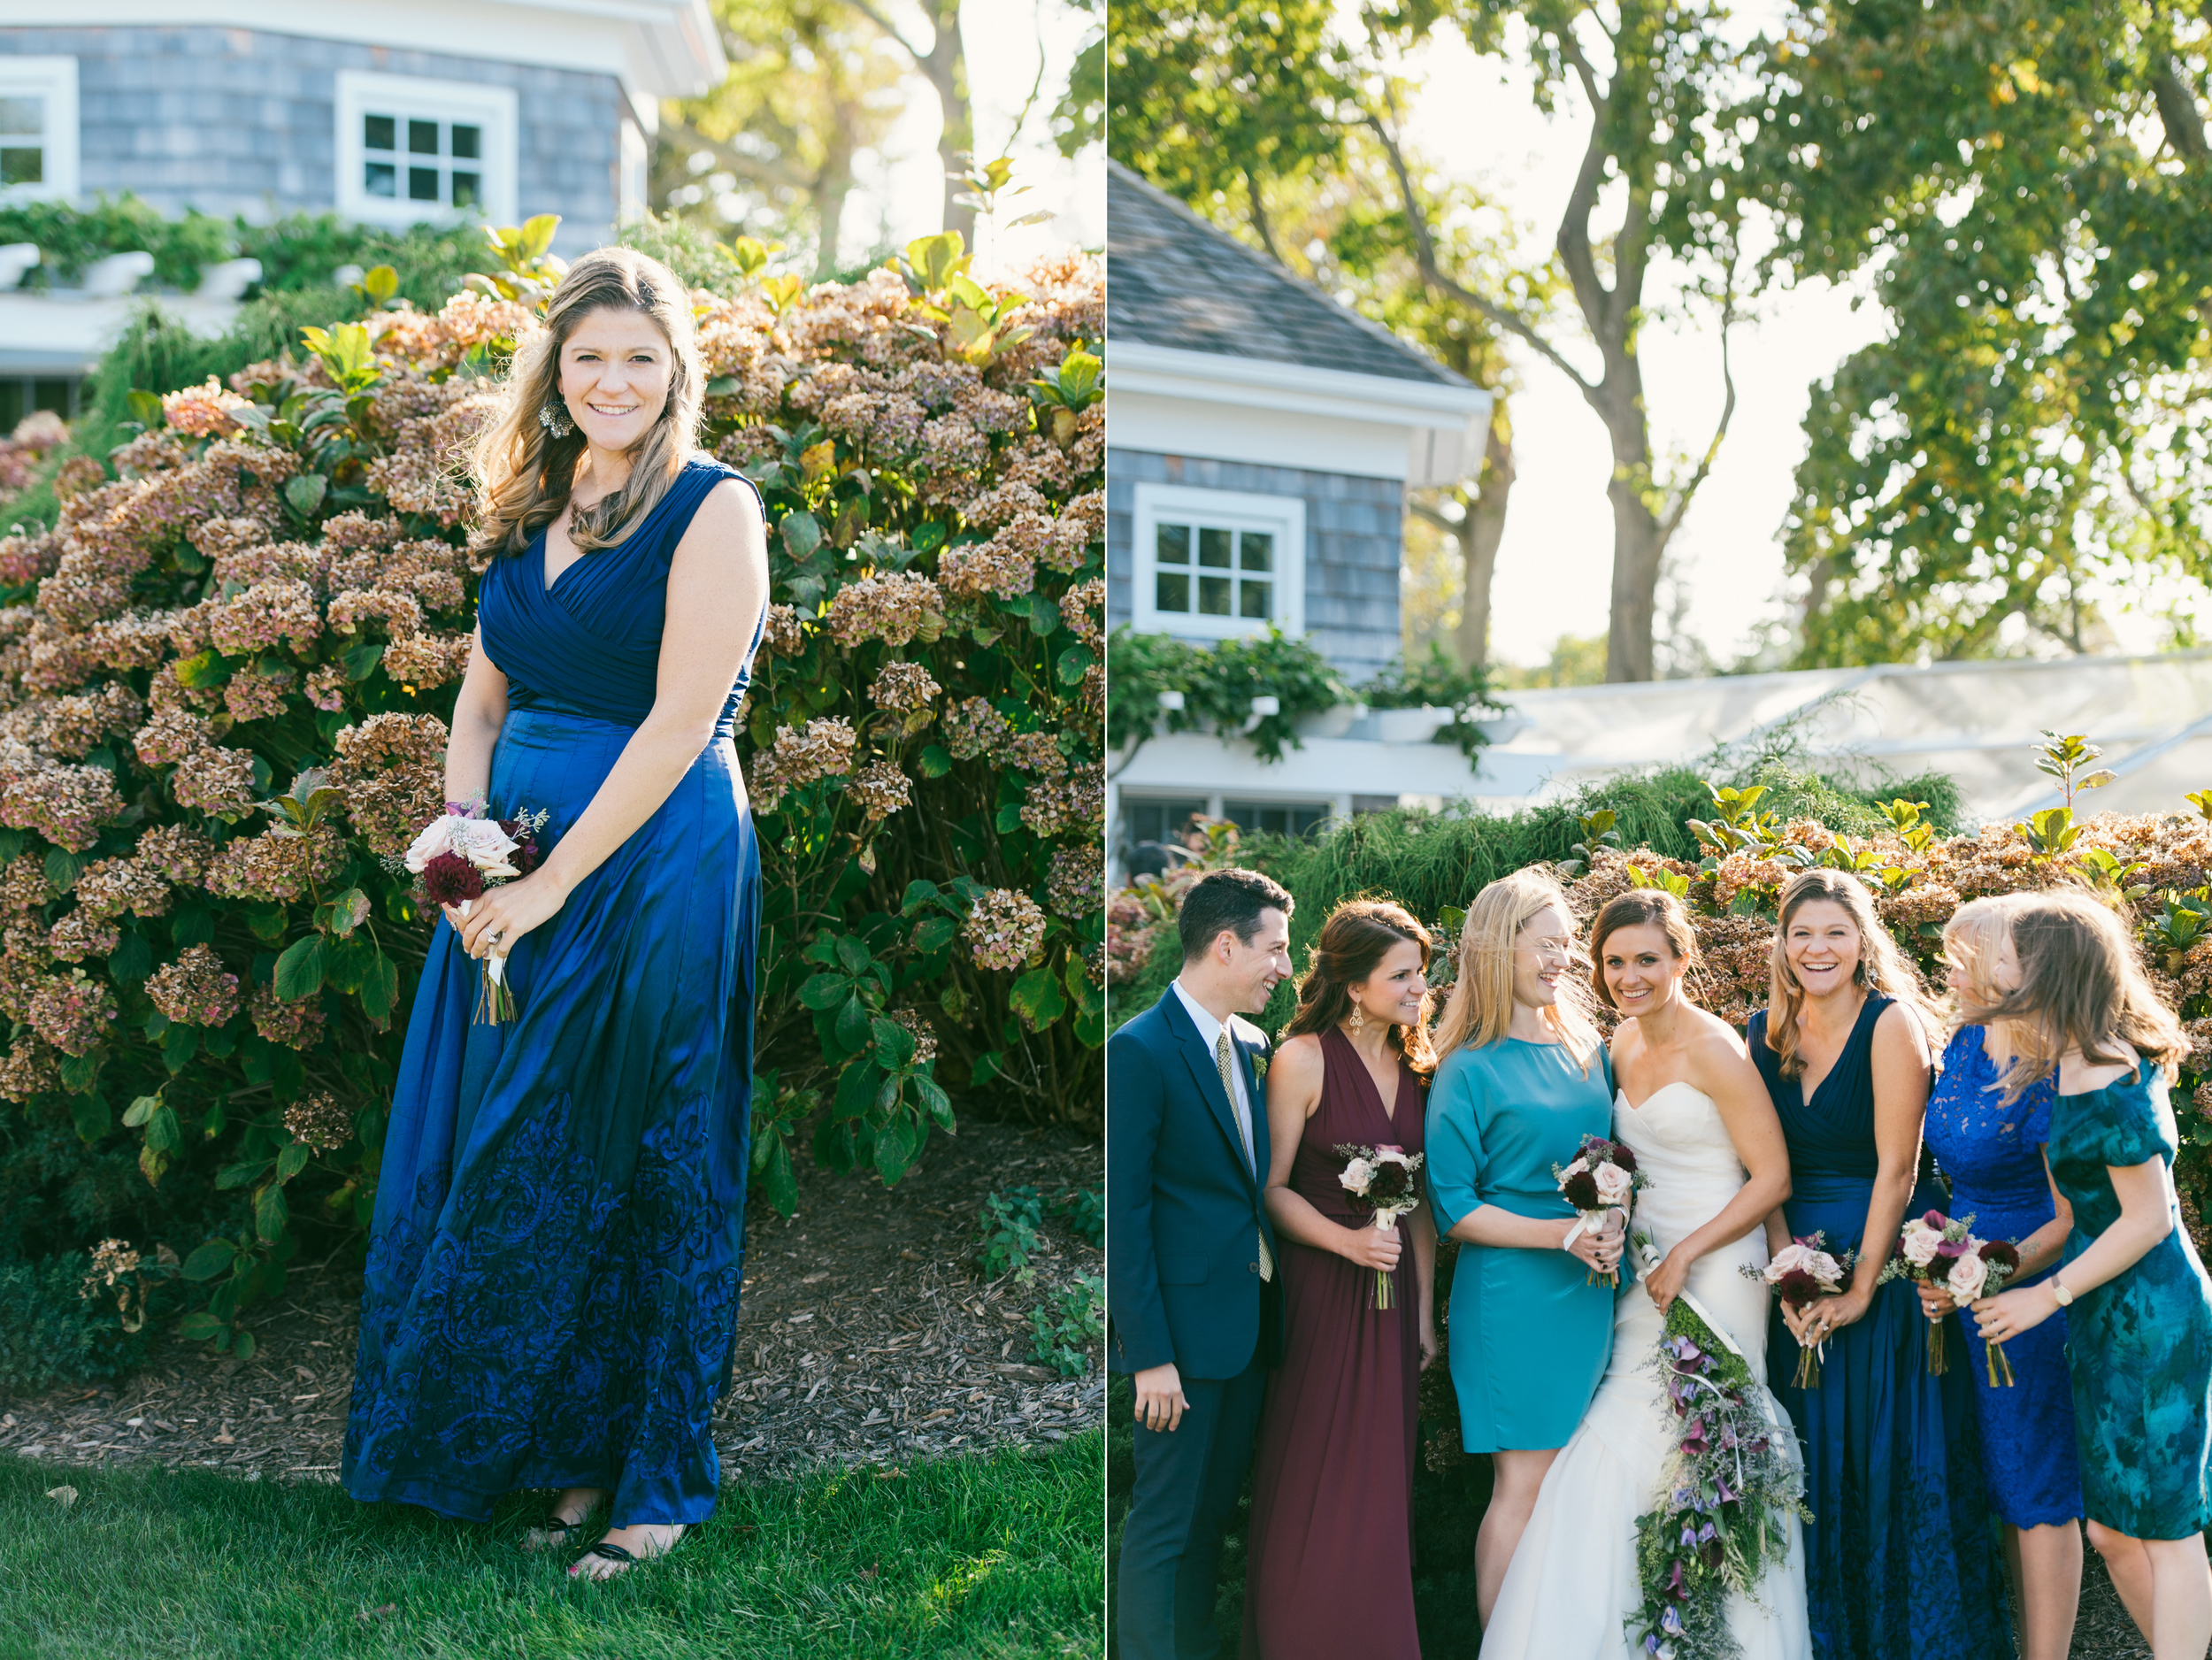 EastHamptonWeddingPhotography8A.jpg